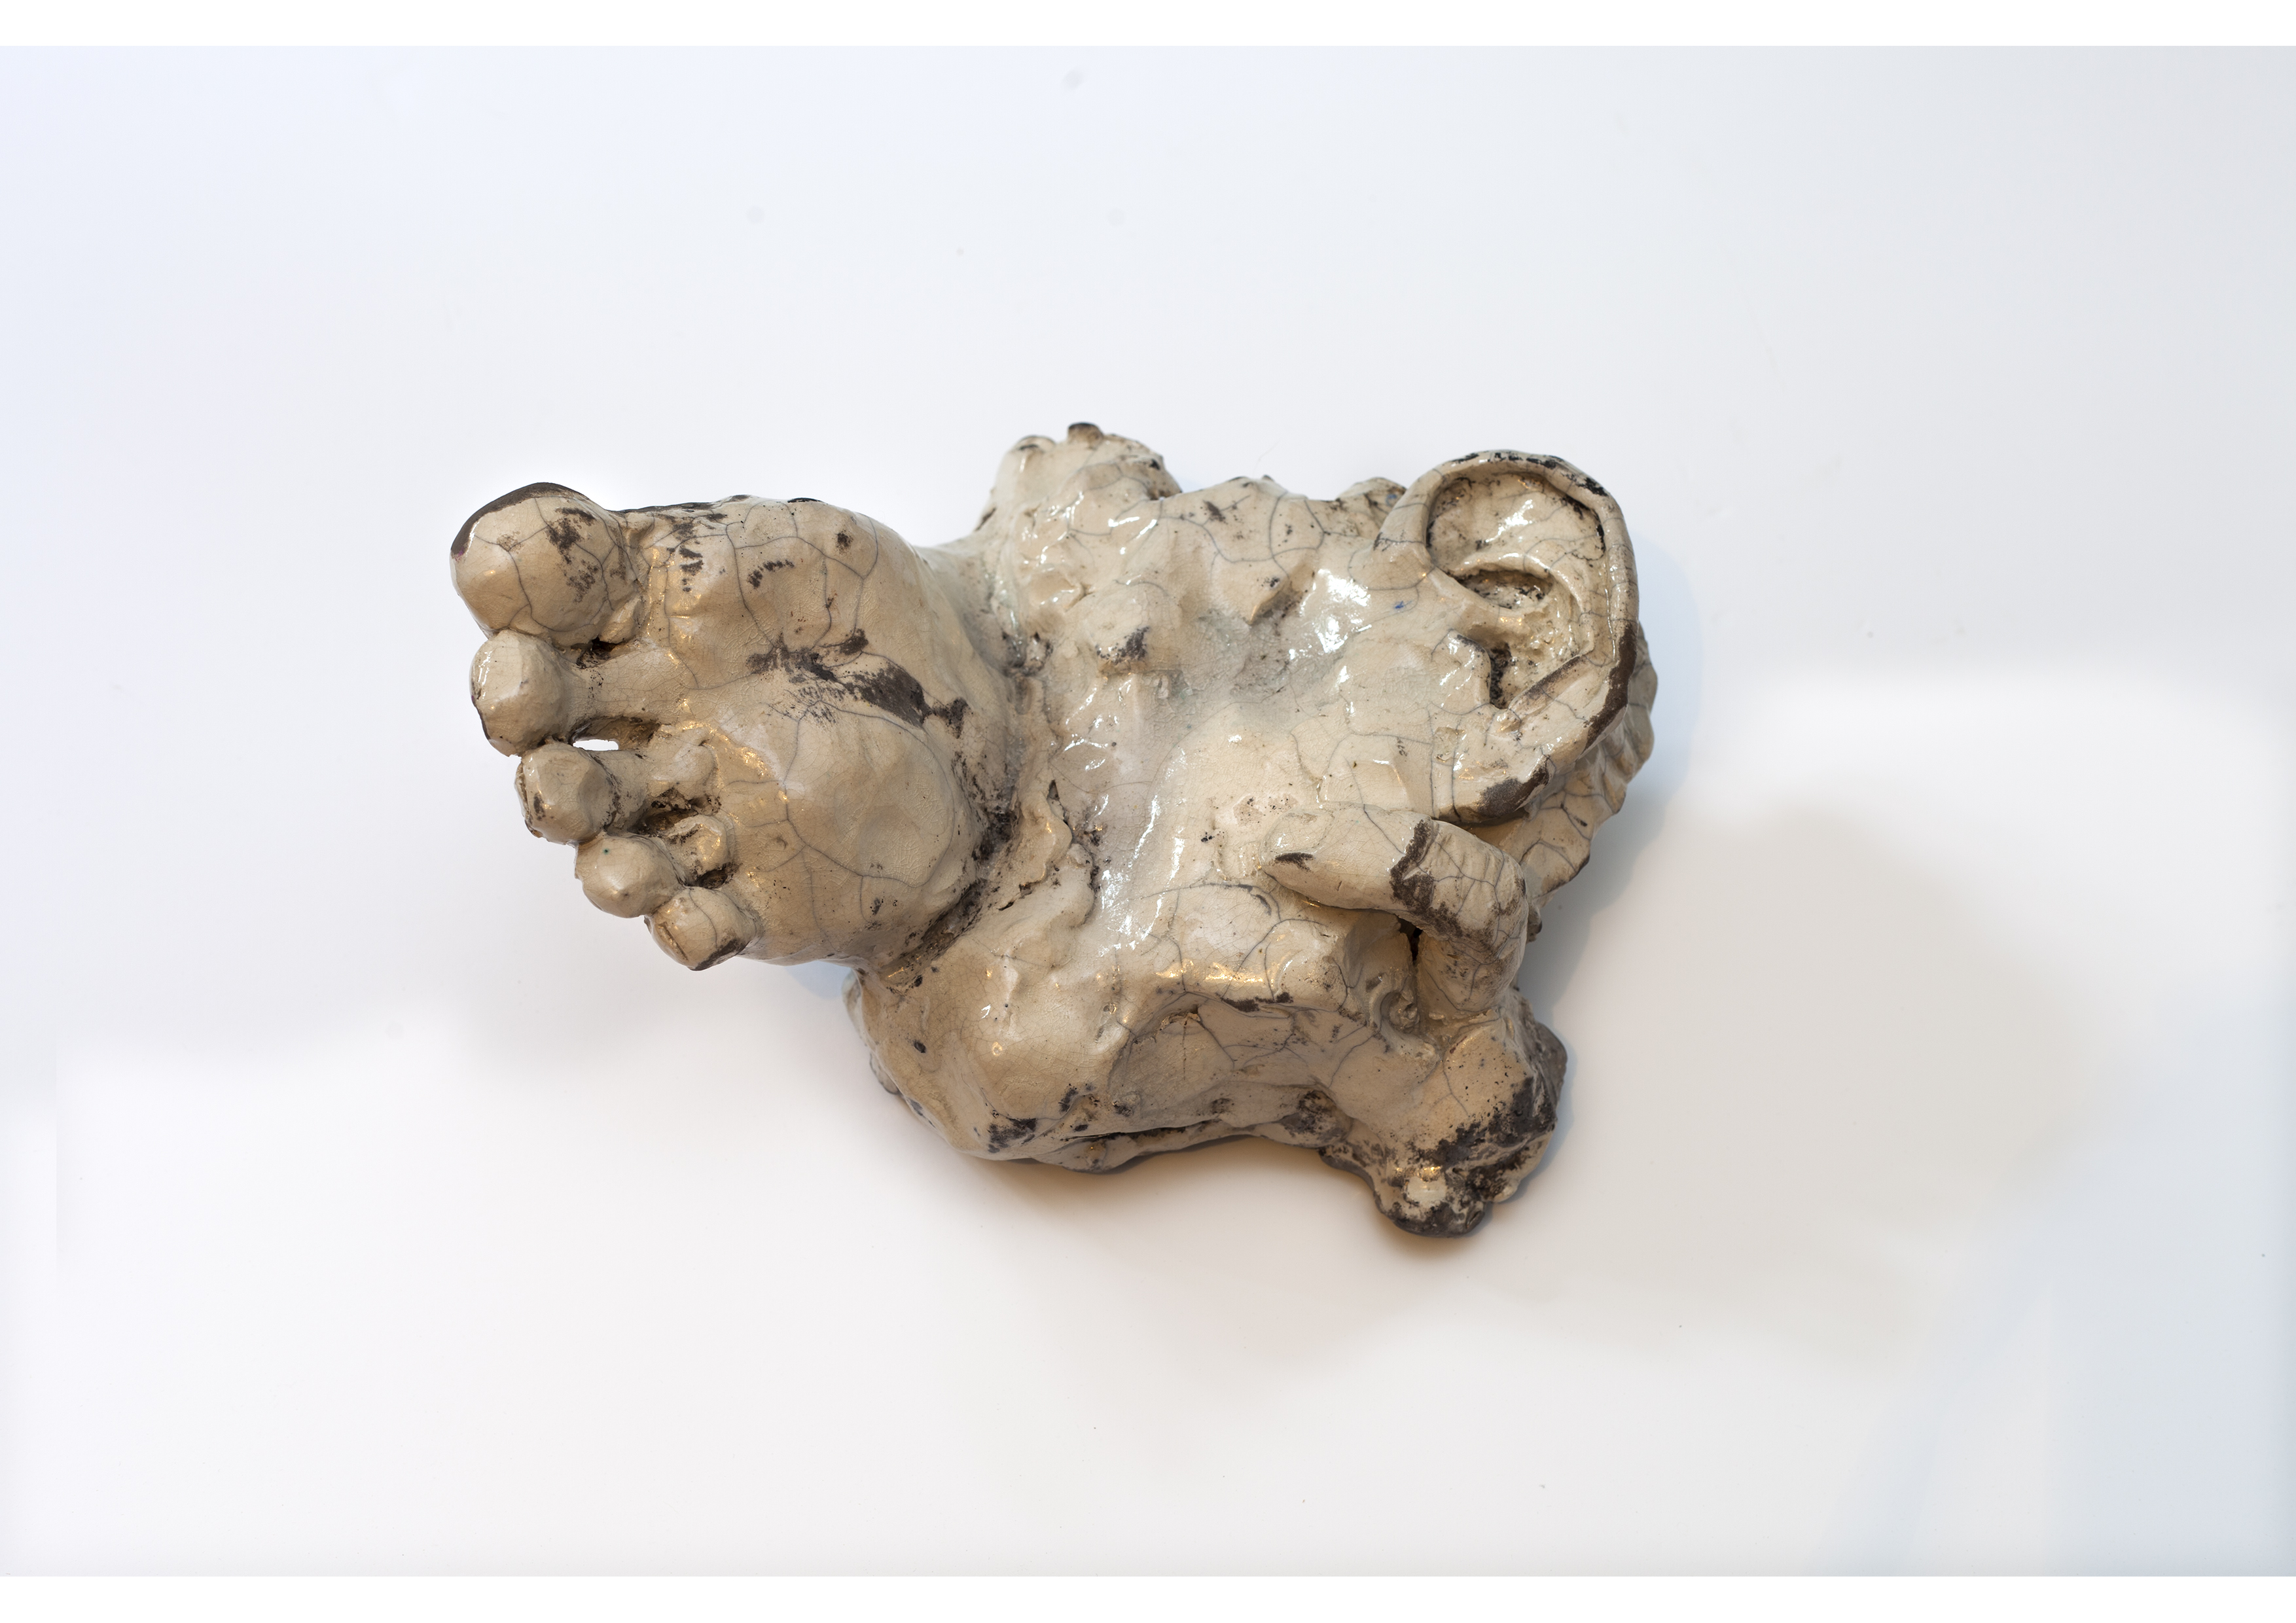 A Foot and ear, 2013, 22x17x17 cm, clay